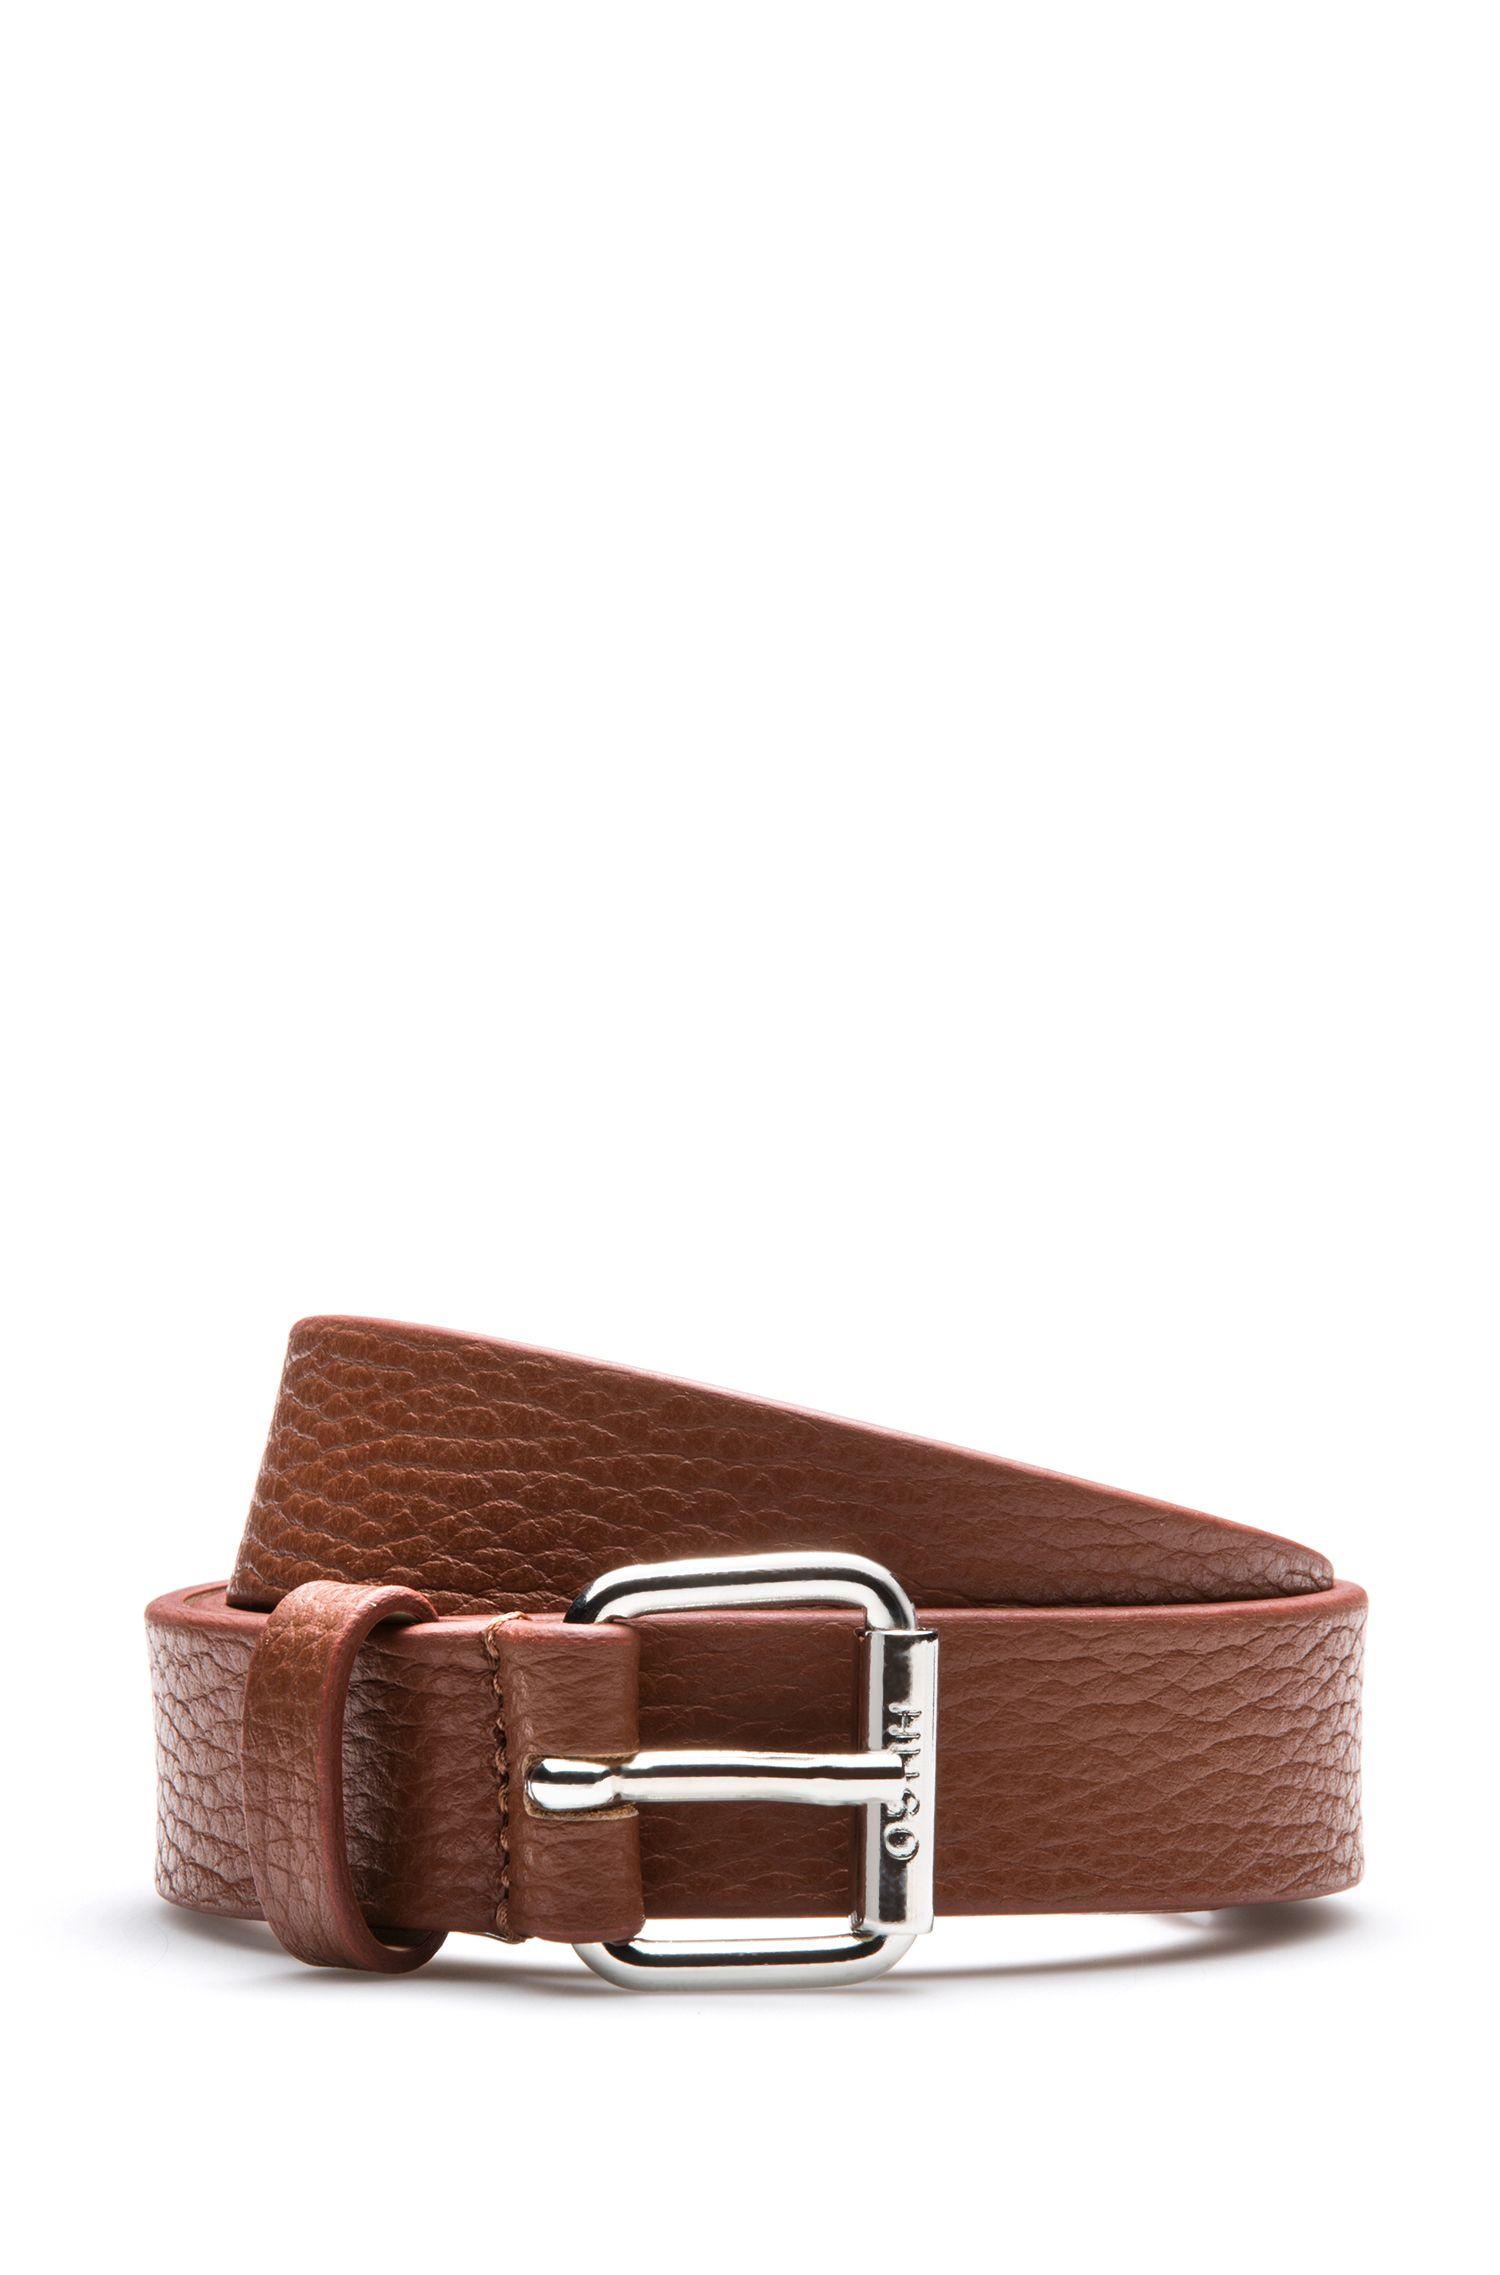 Grained-leather belt with polished buckle